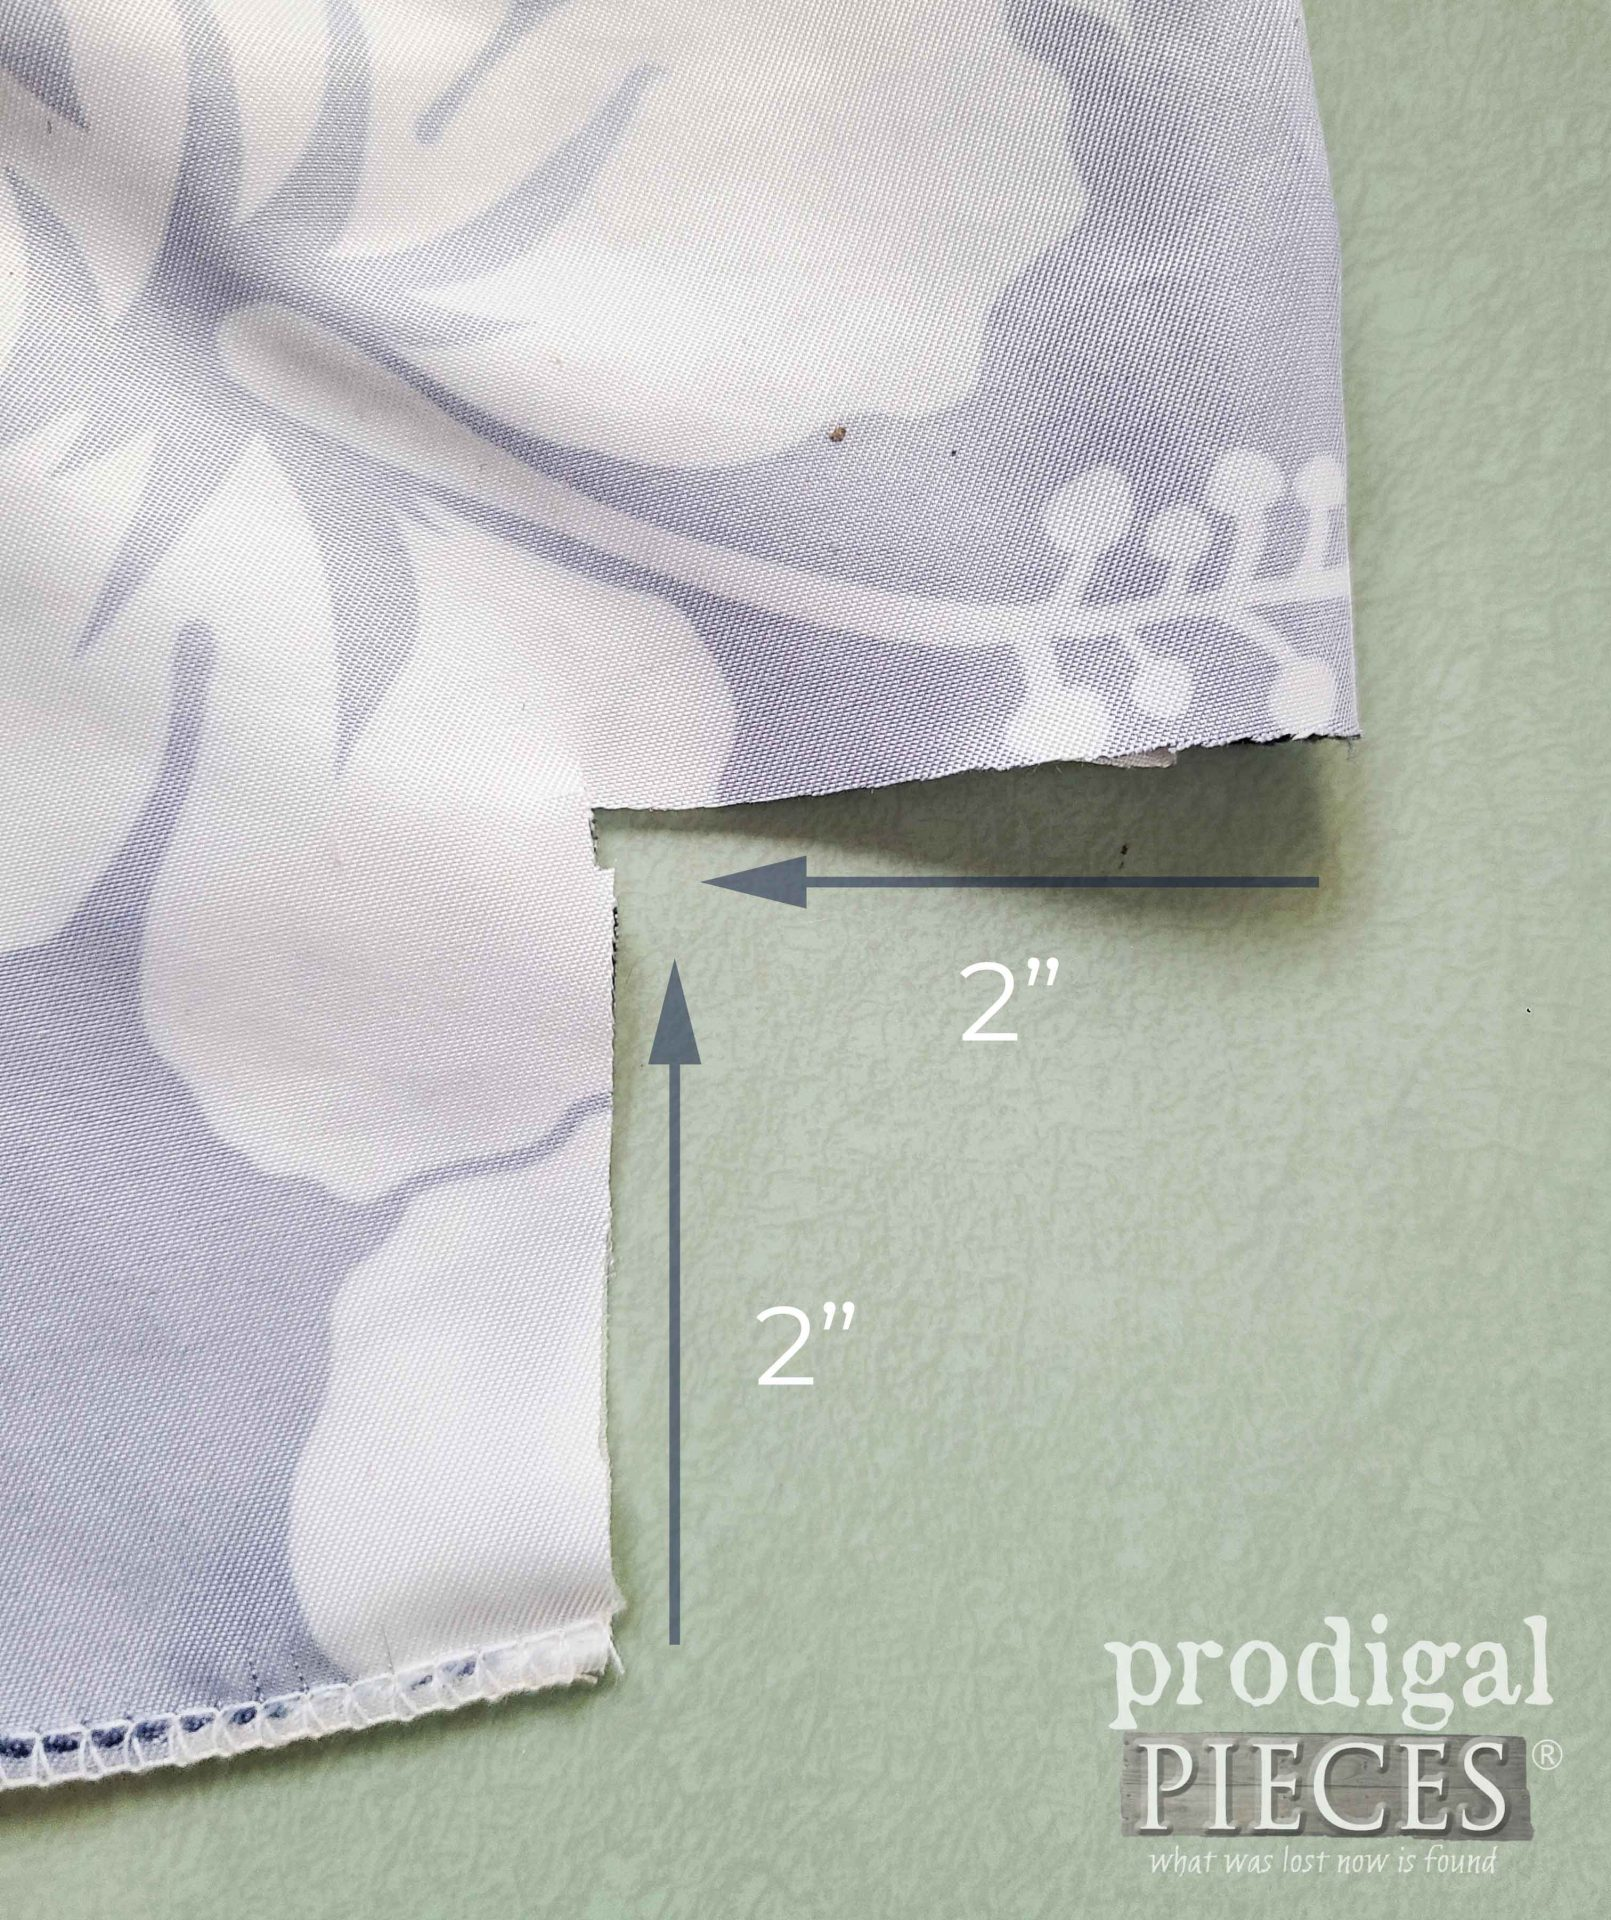 Boxed Corner Diagram for Upcycled Swimsuit Bag by Larissa of Prodigal Pieces   prodigalpieces.com #prodigalpieces